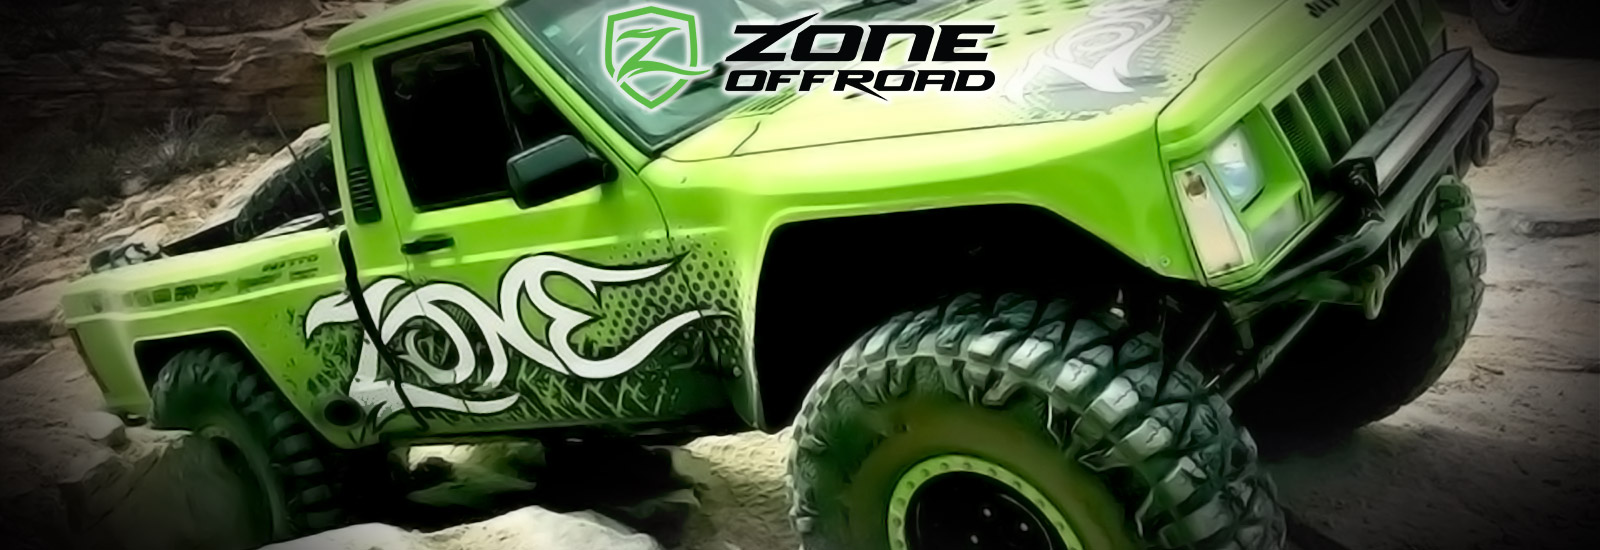 Zone Offroad